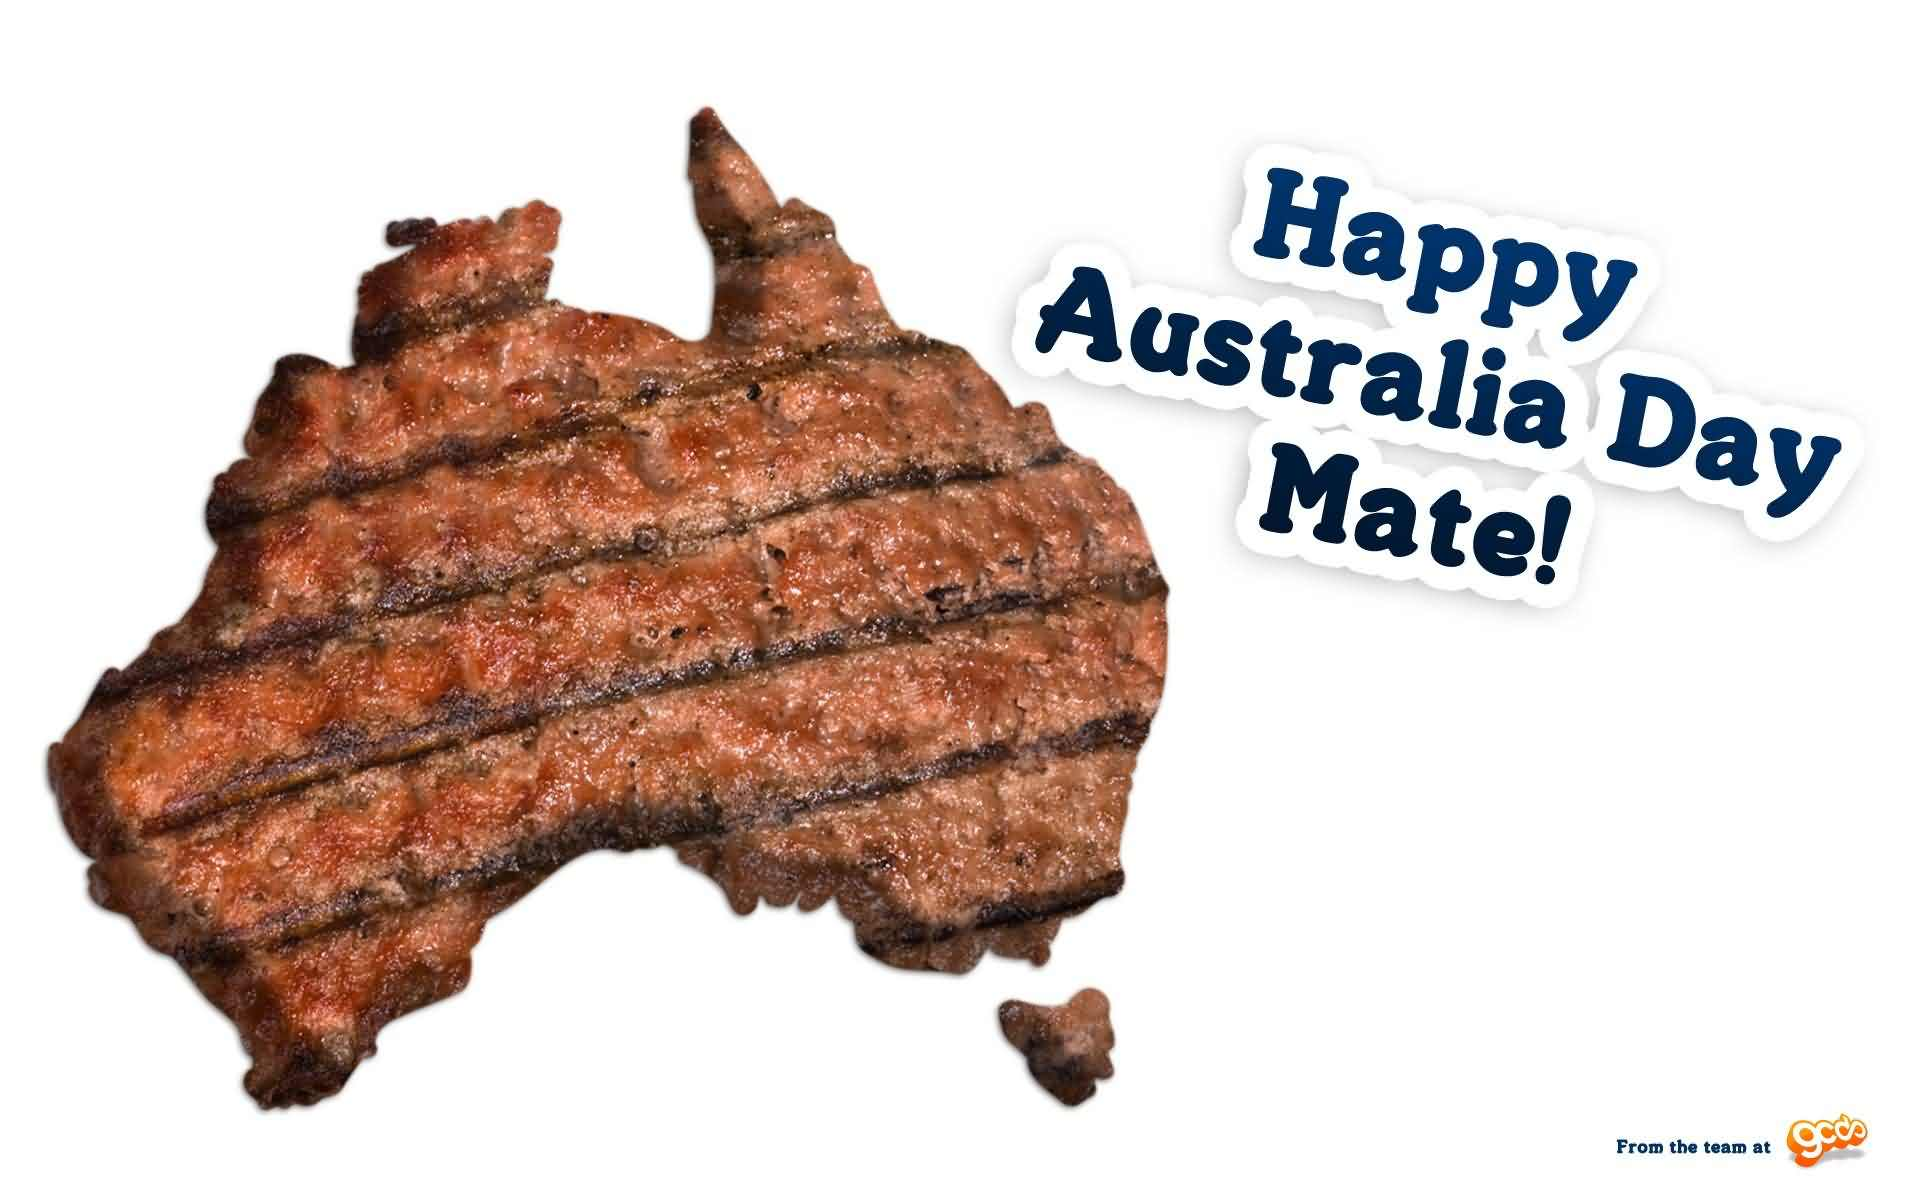 Happy Australia Day Mate Wishes